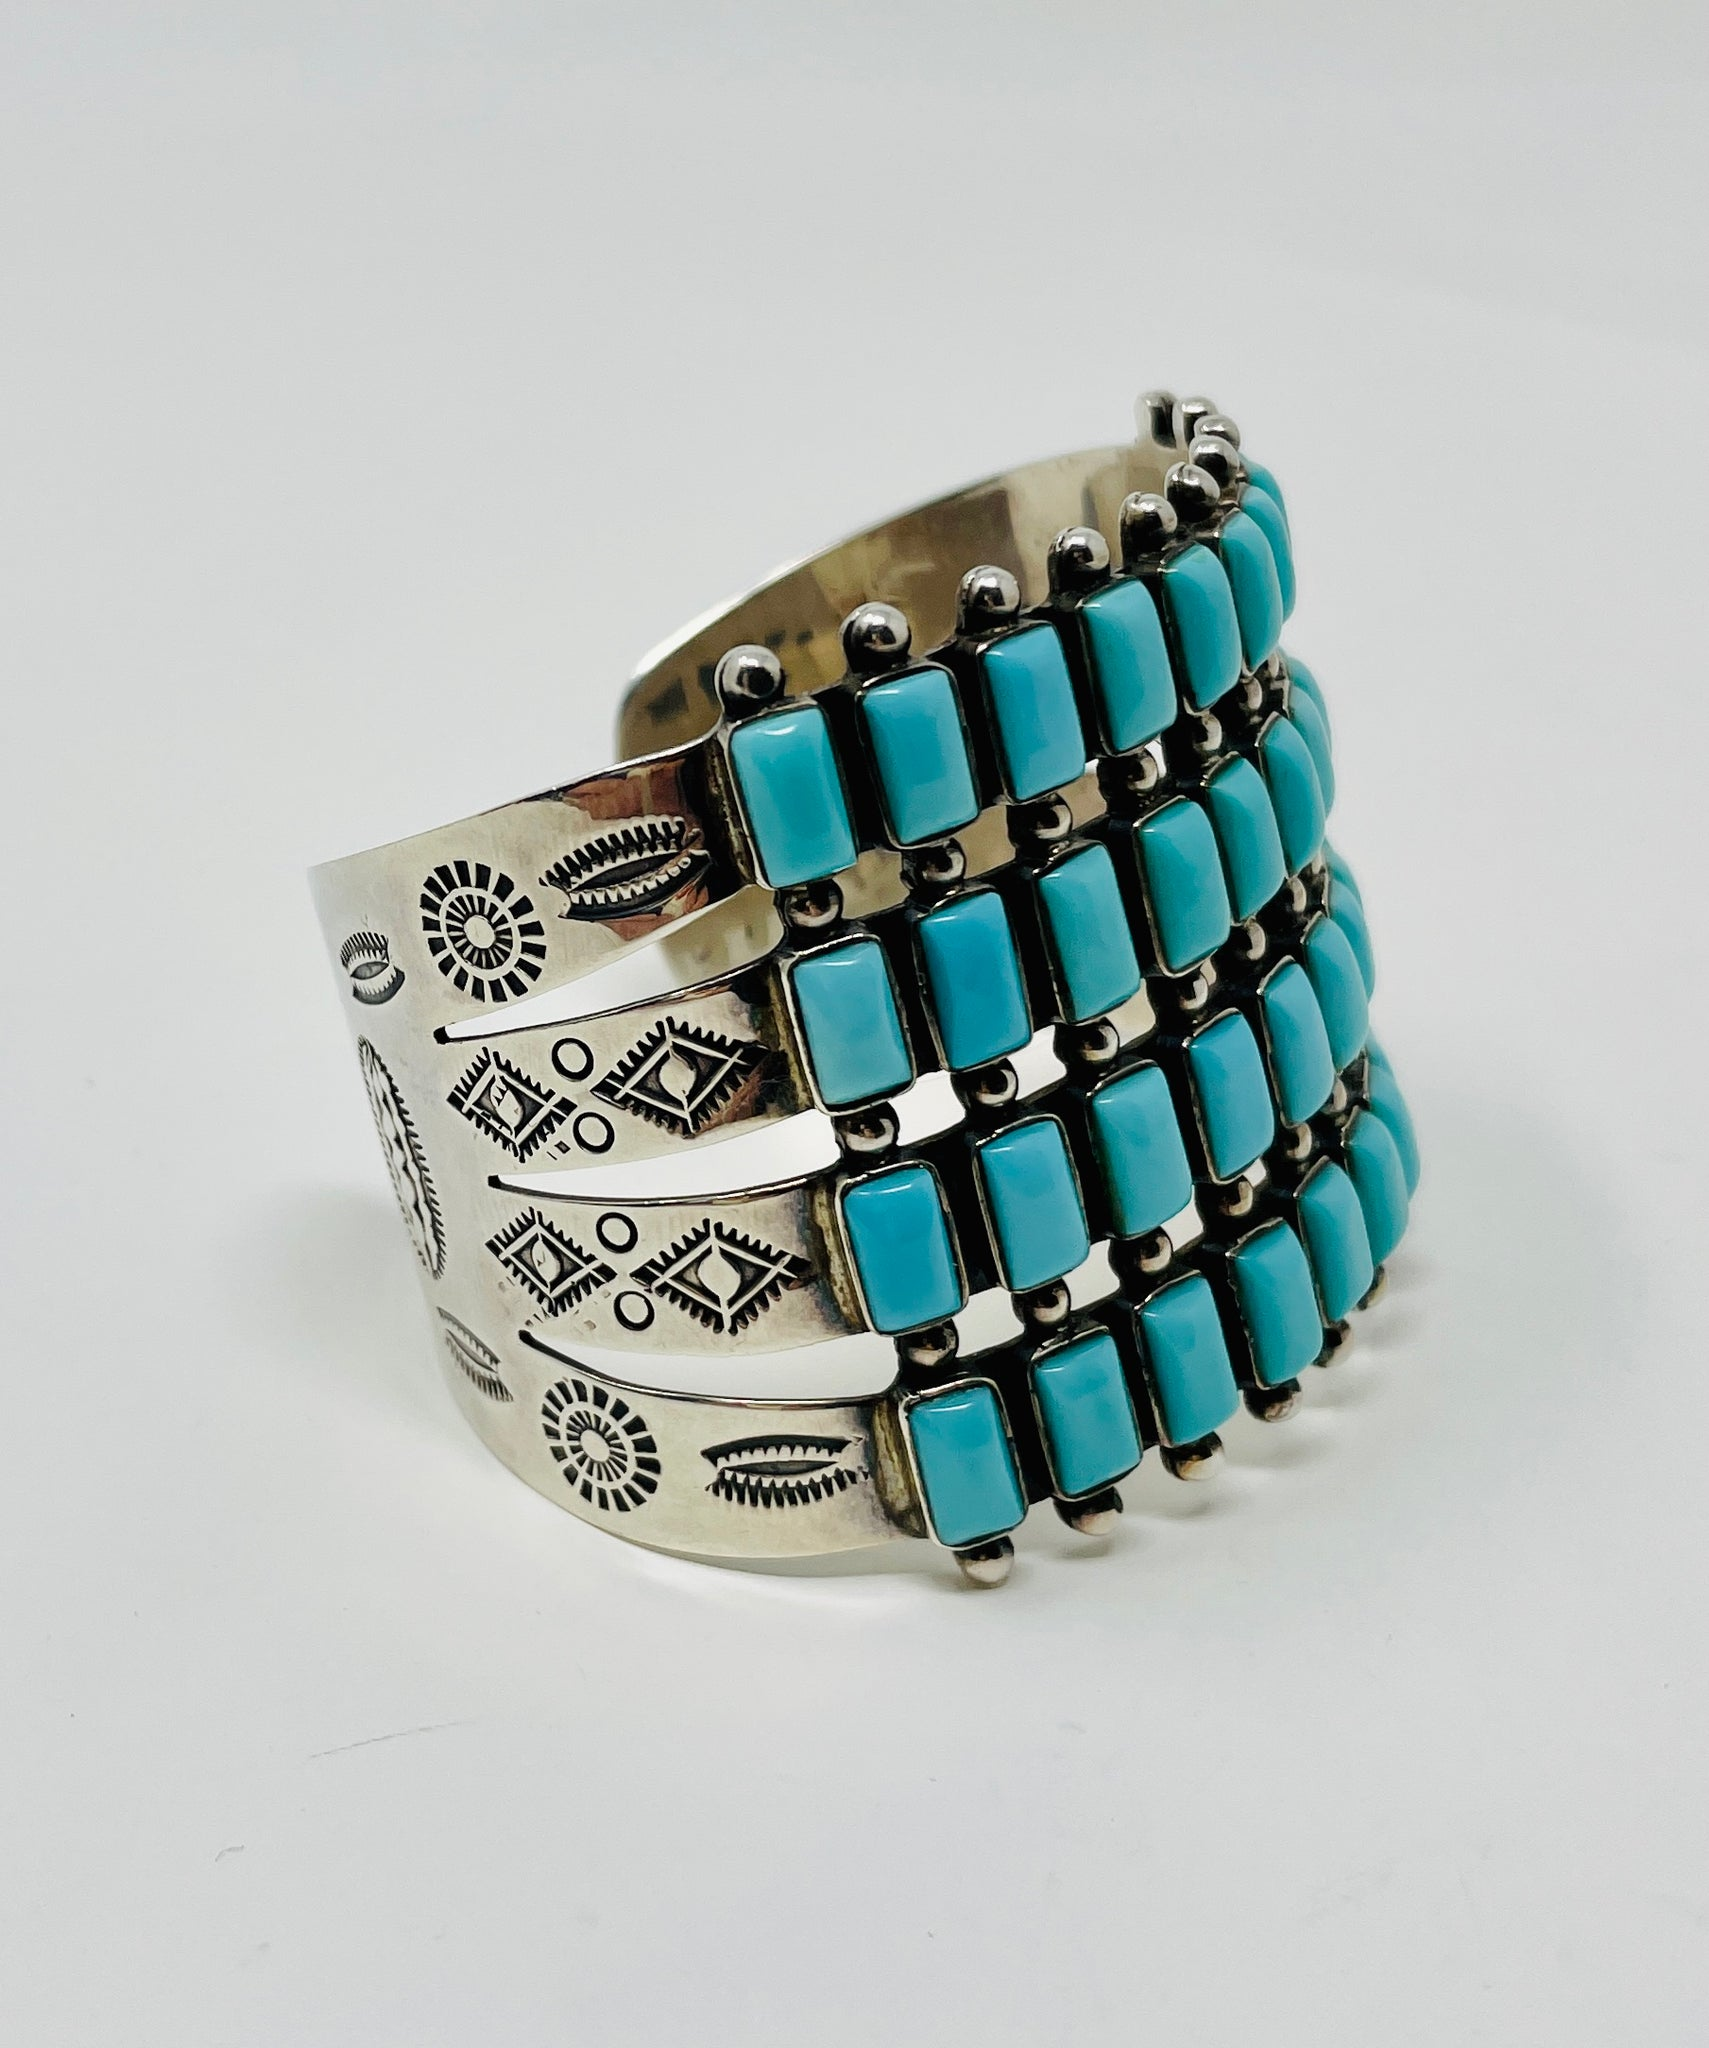 Sensational Zuni Silver Row Cuff with 40 Turquoise Stones and Stampwork